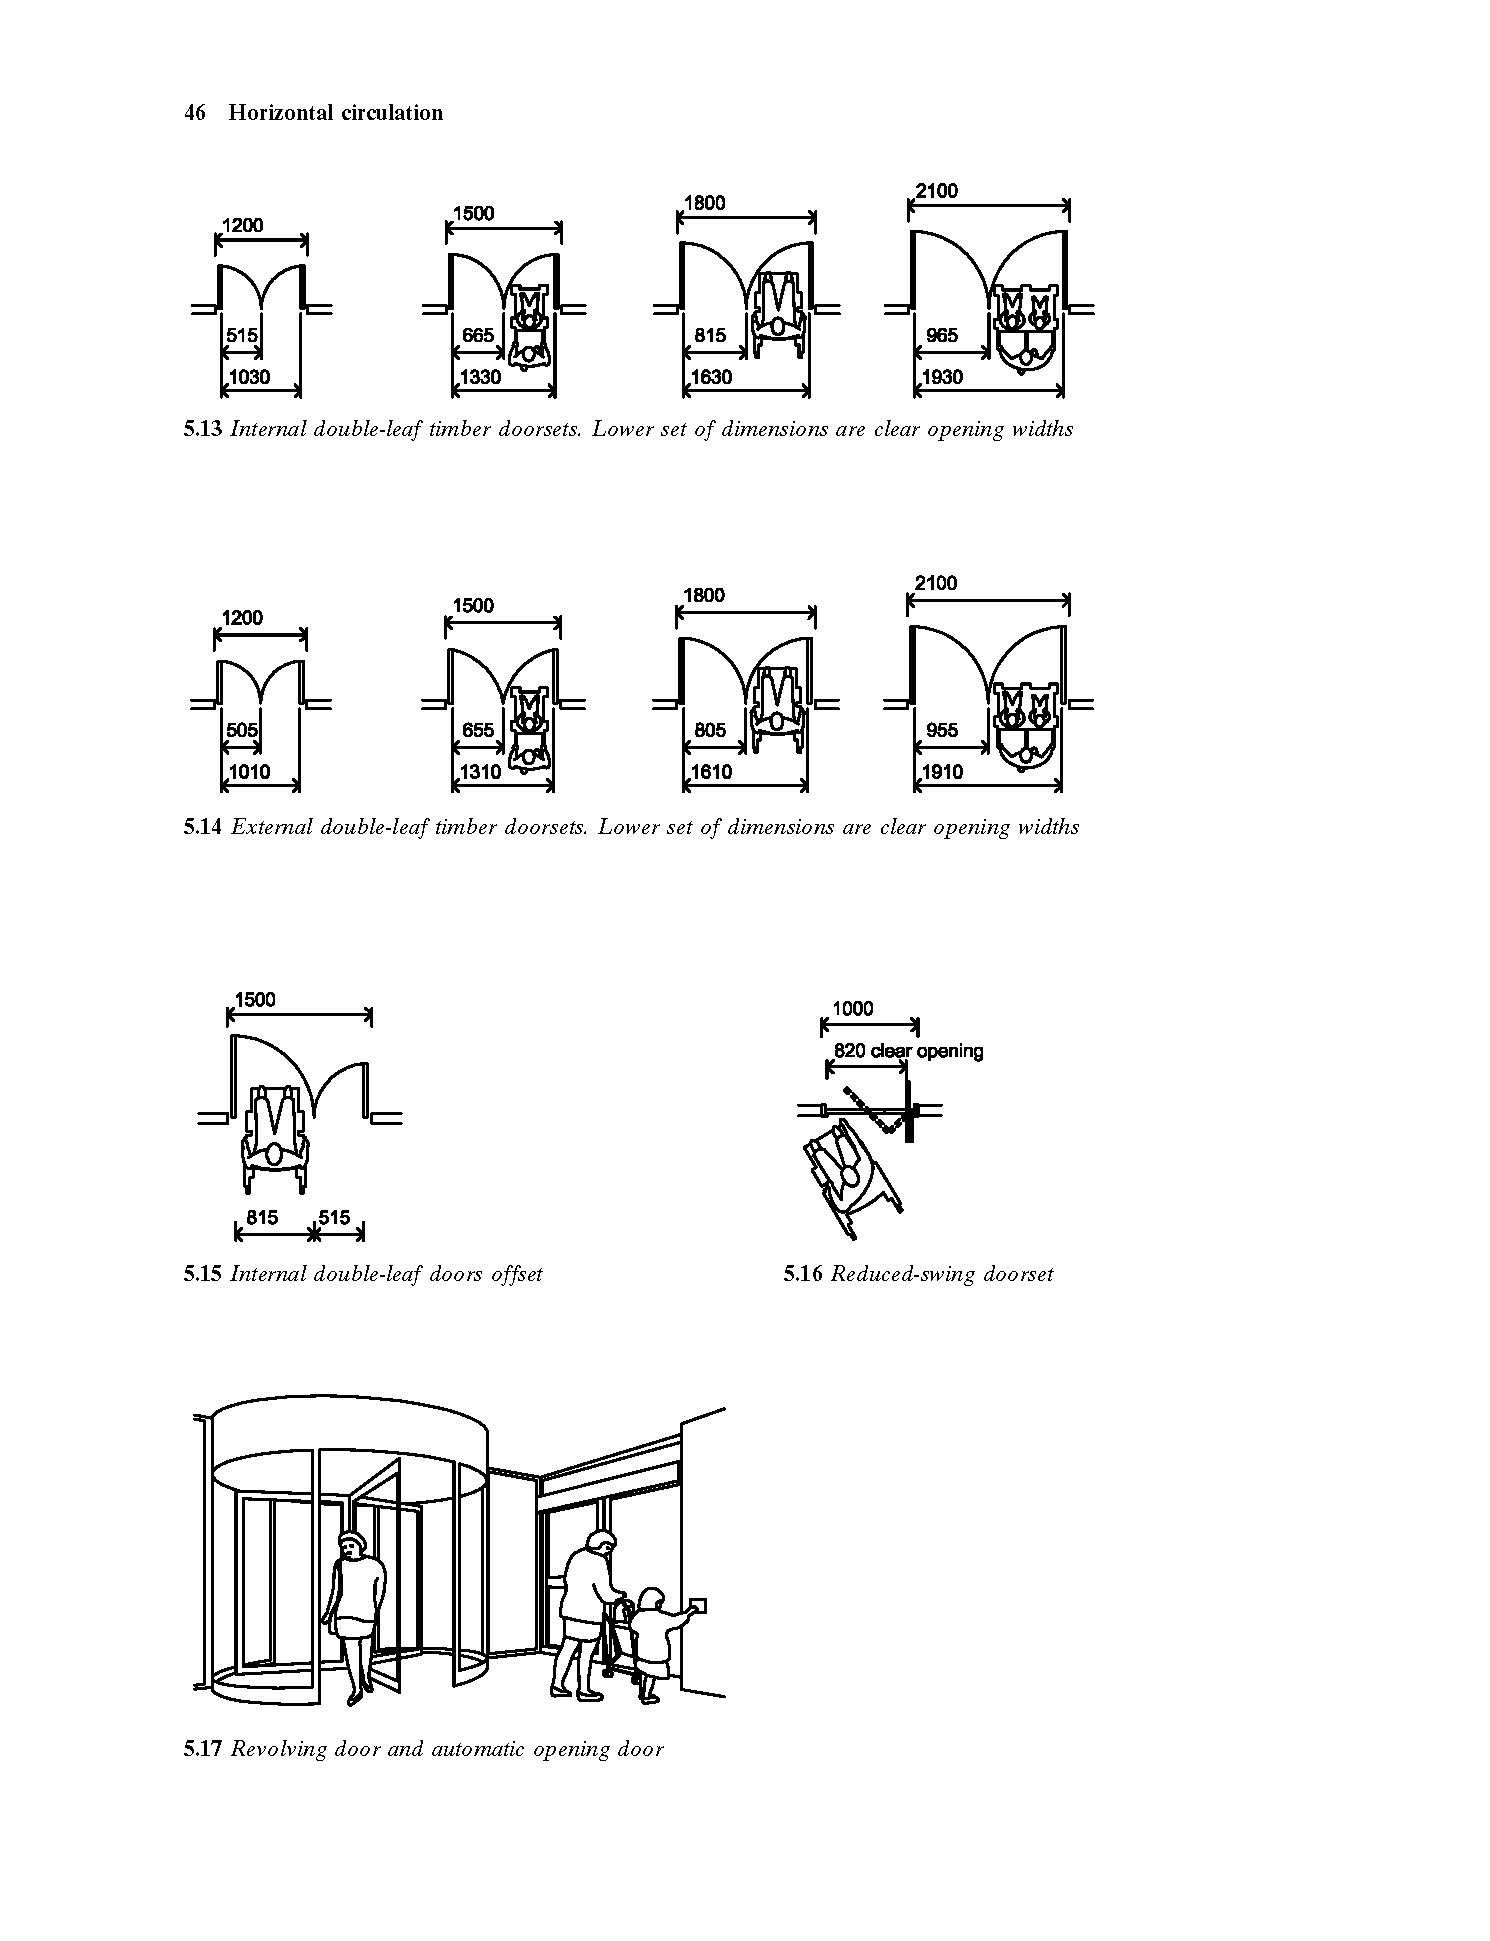 Universal design neufert pinterest for Concept home architecture and engineering